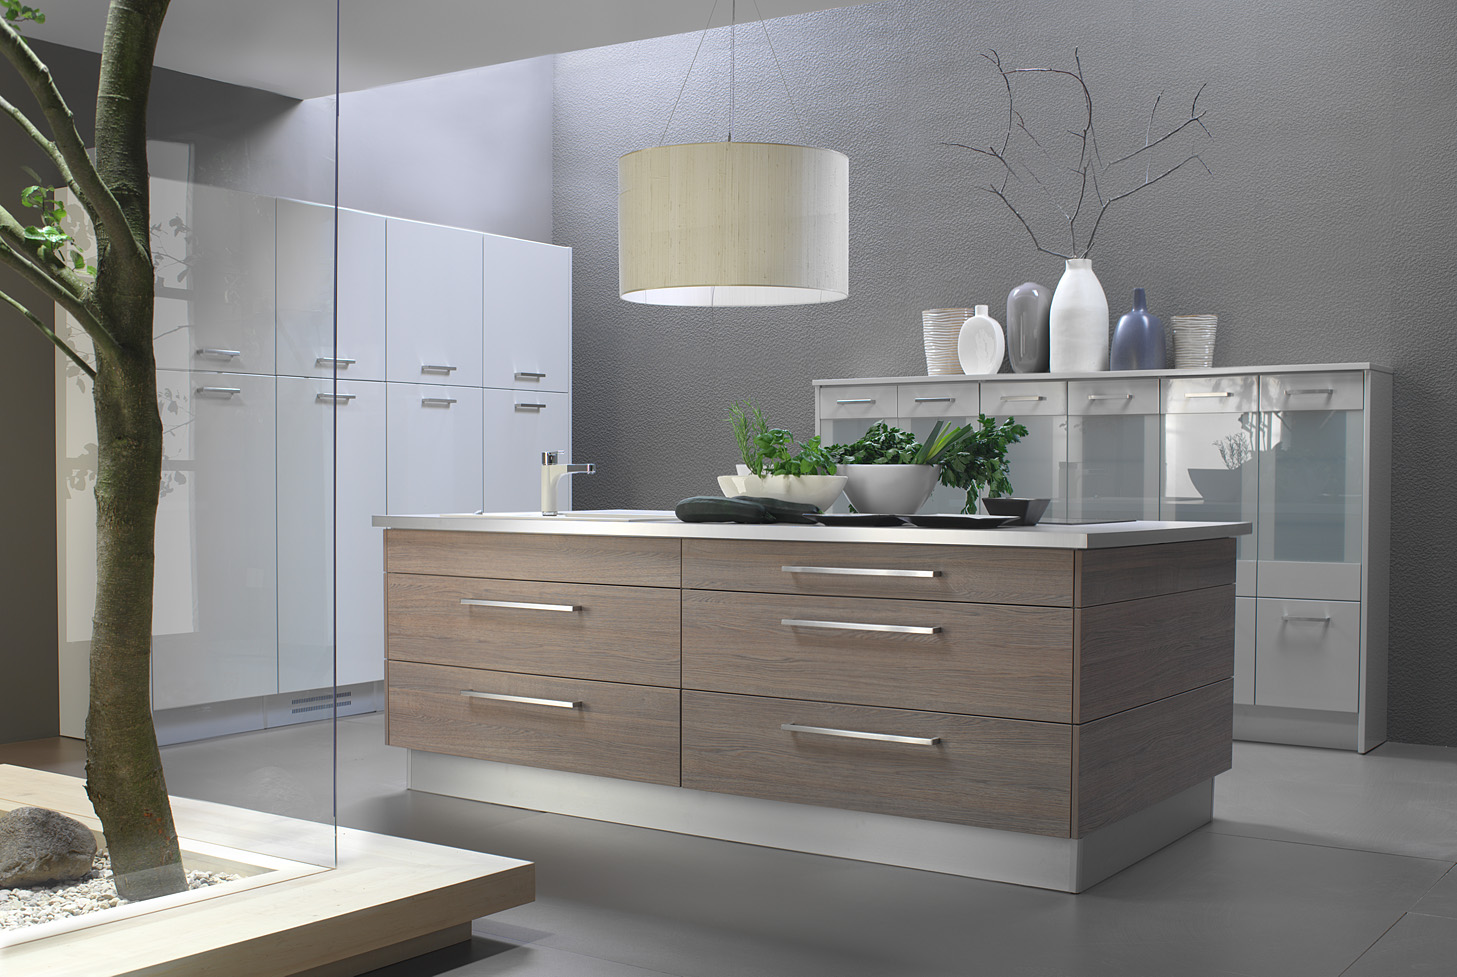 Laminate kitchen cabinets design ideas czytamwwannie 39 s for Cupboard door design ideas